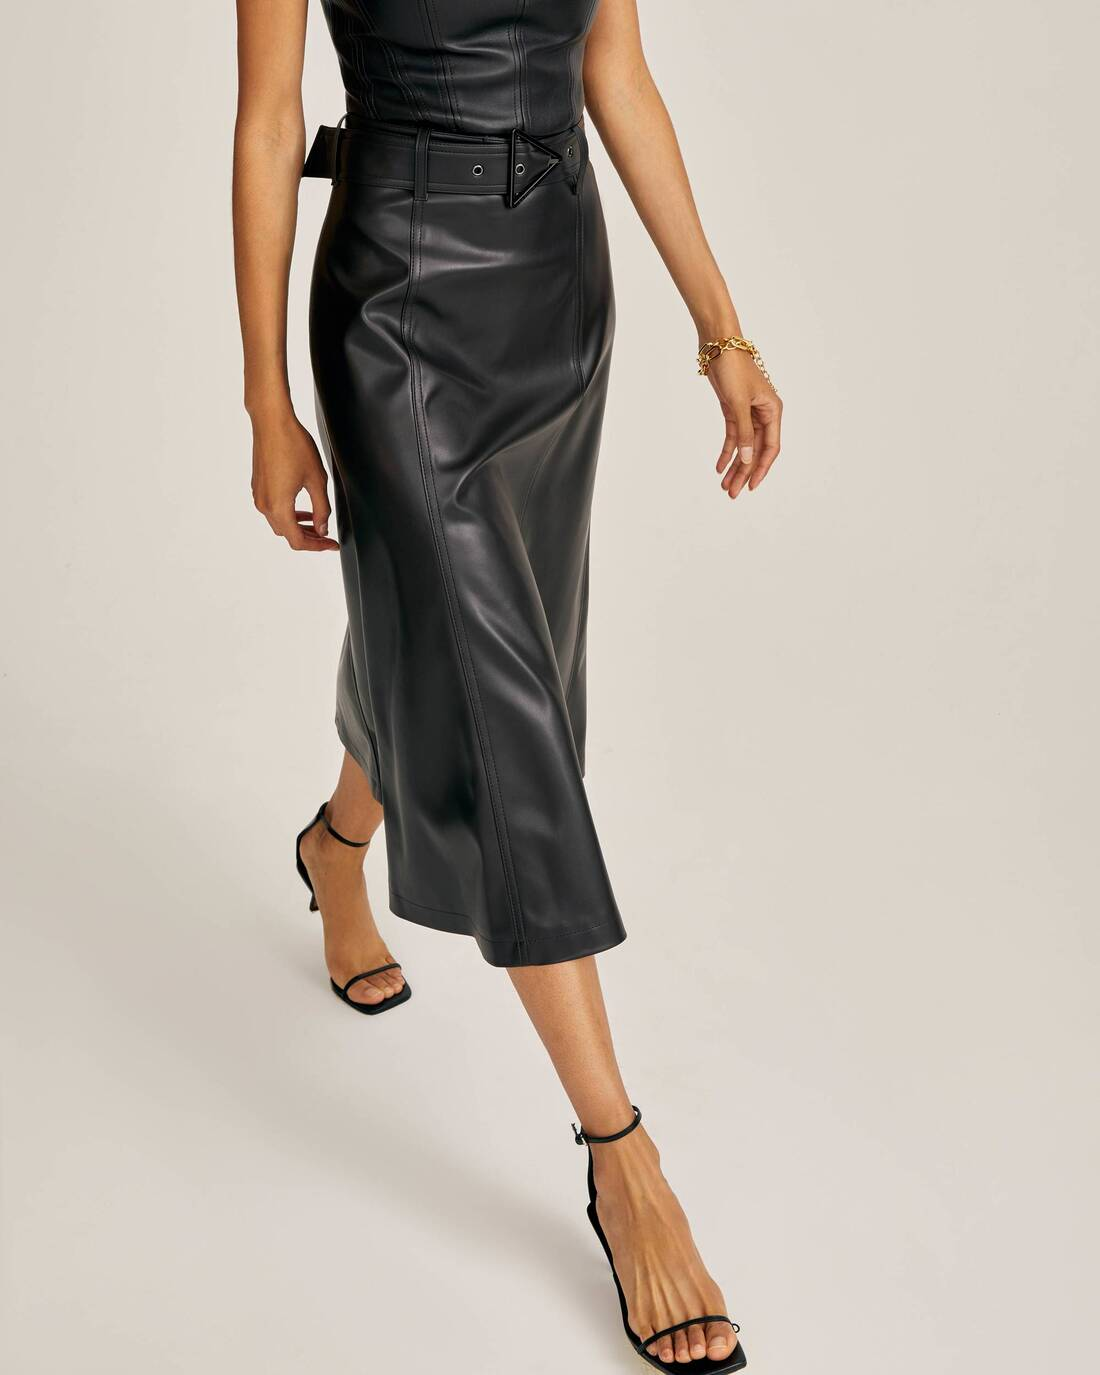 Flared skirt from eco-leather